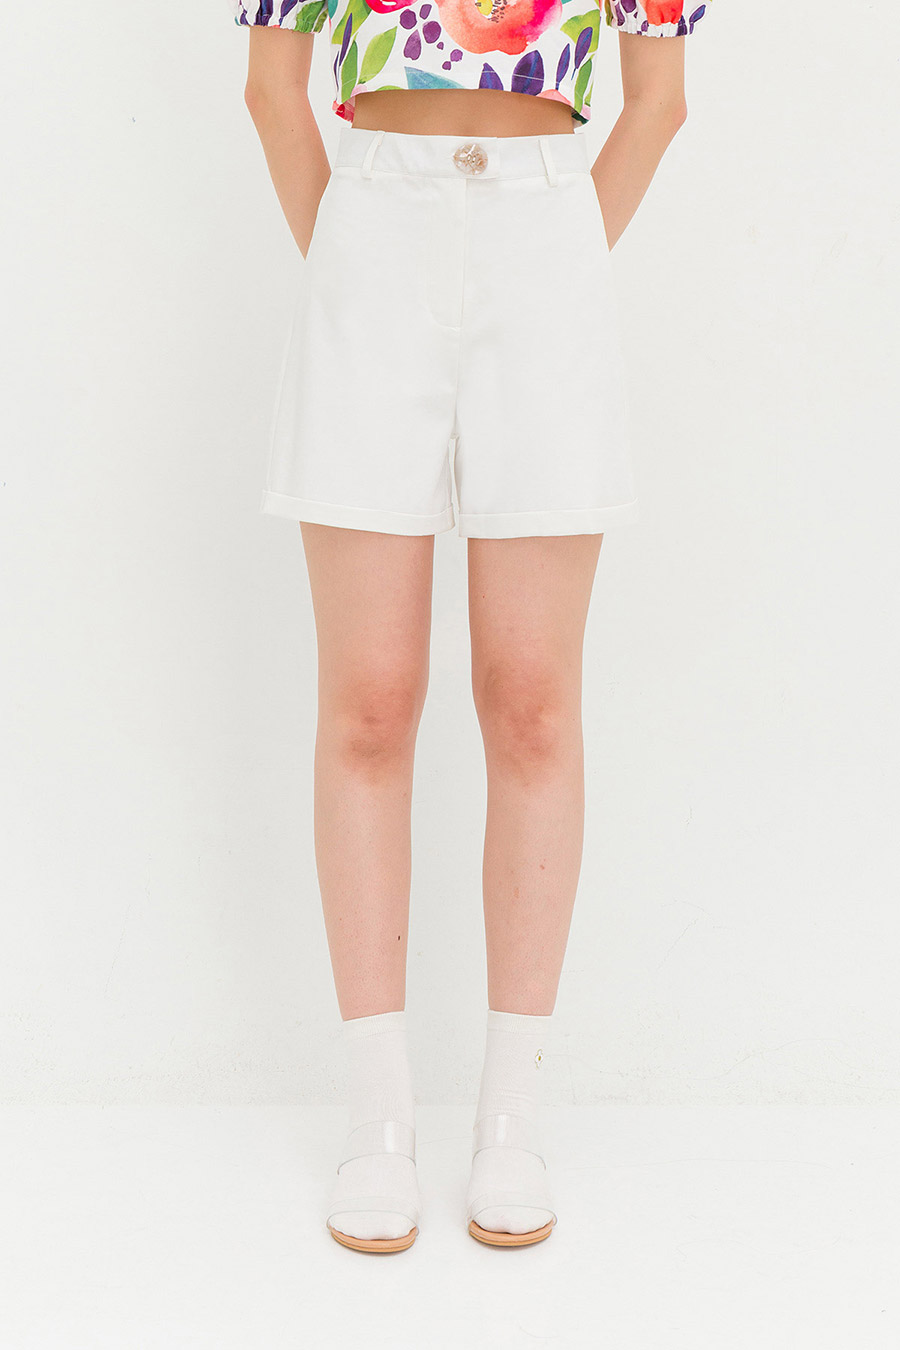 DENEVER SHORTS - IVORY [BY MODPARADE]